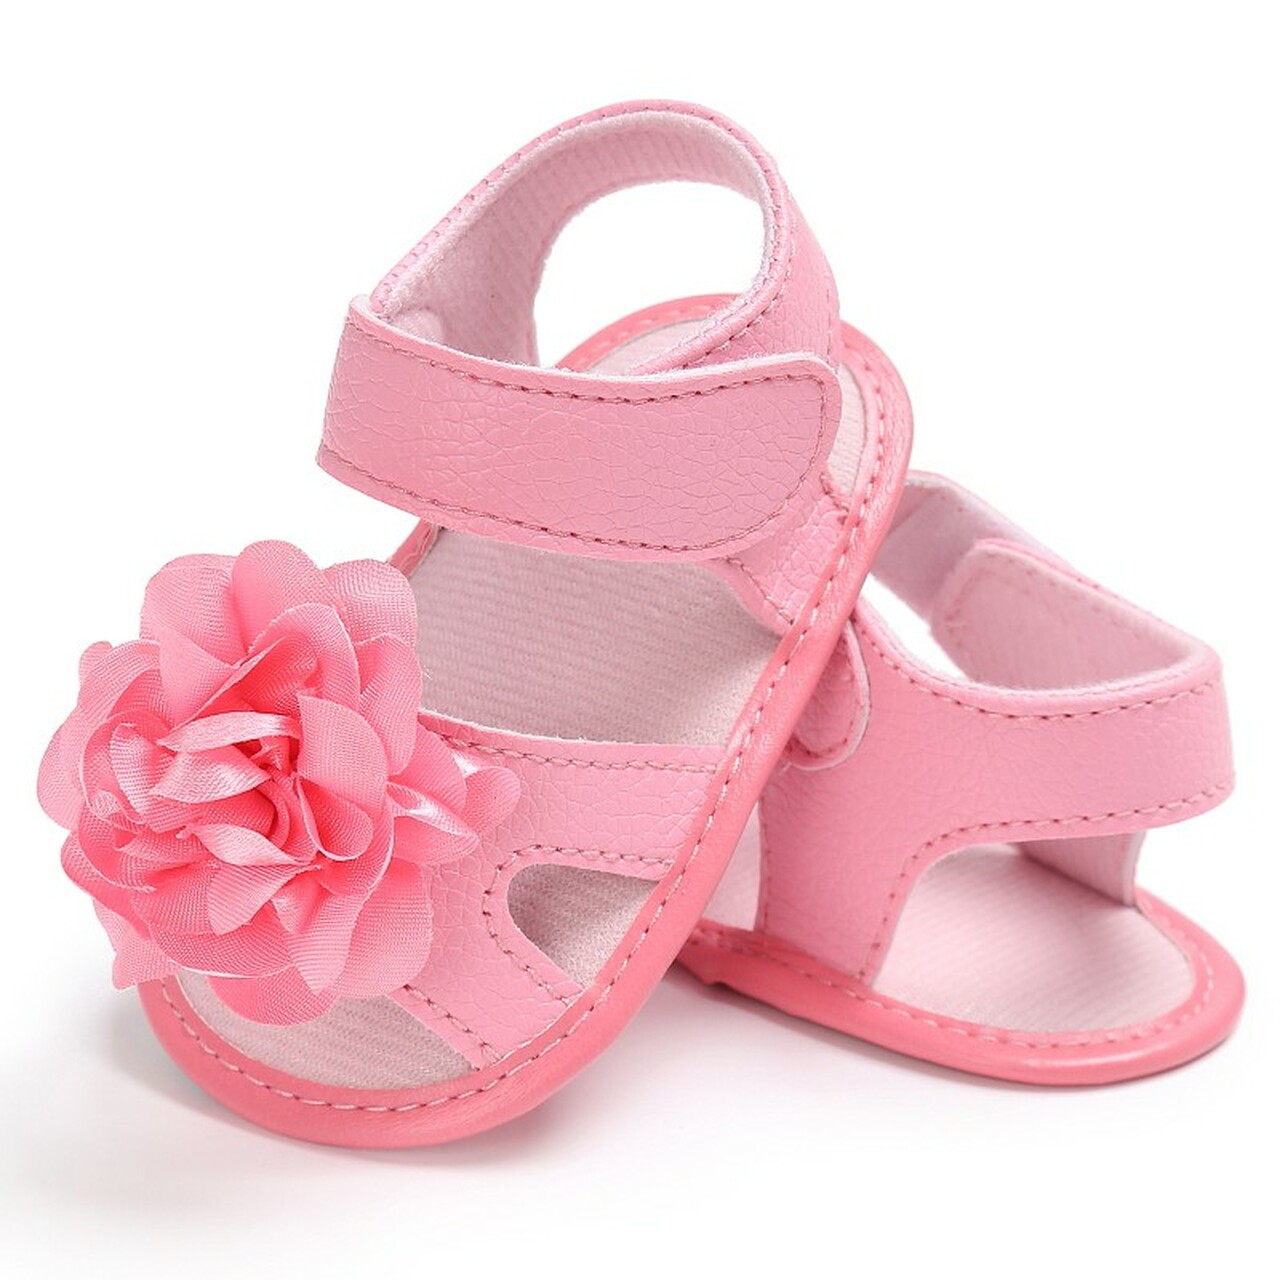 Baby Shoes Sweet Baby Girls Princess Polka Dot Big Bow Infant Toddler Ballet Dress Soft Soled Anti-slip Shoes Footwear Prewalkers Mother & Kids